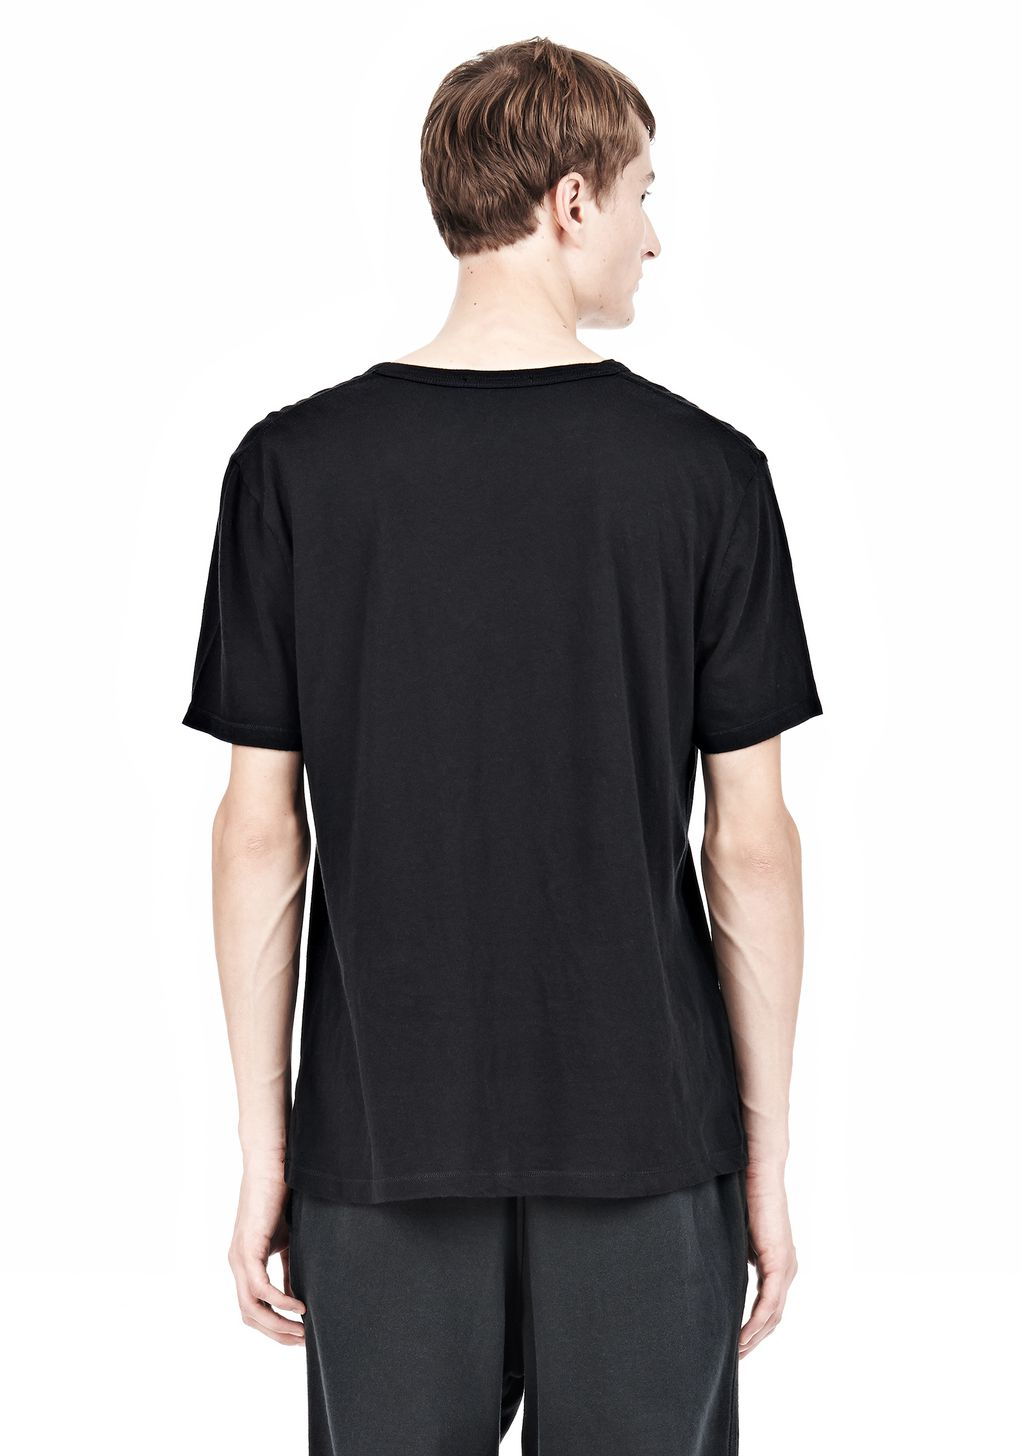 Alexander Wang Classic Low Neck Tee In Black For Men Lyst